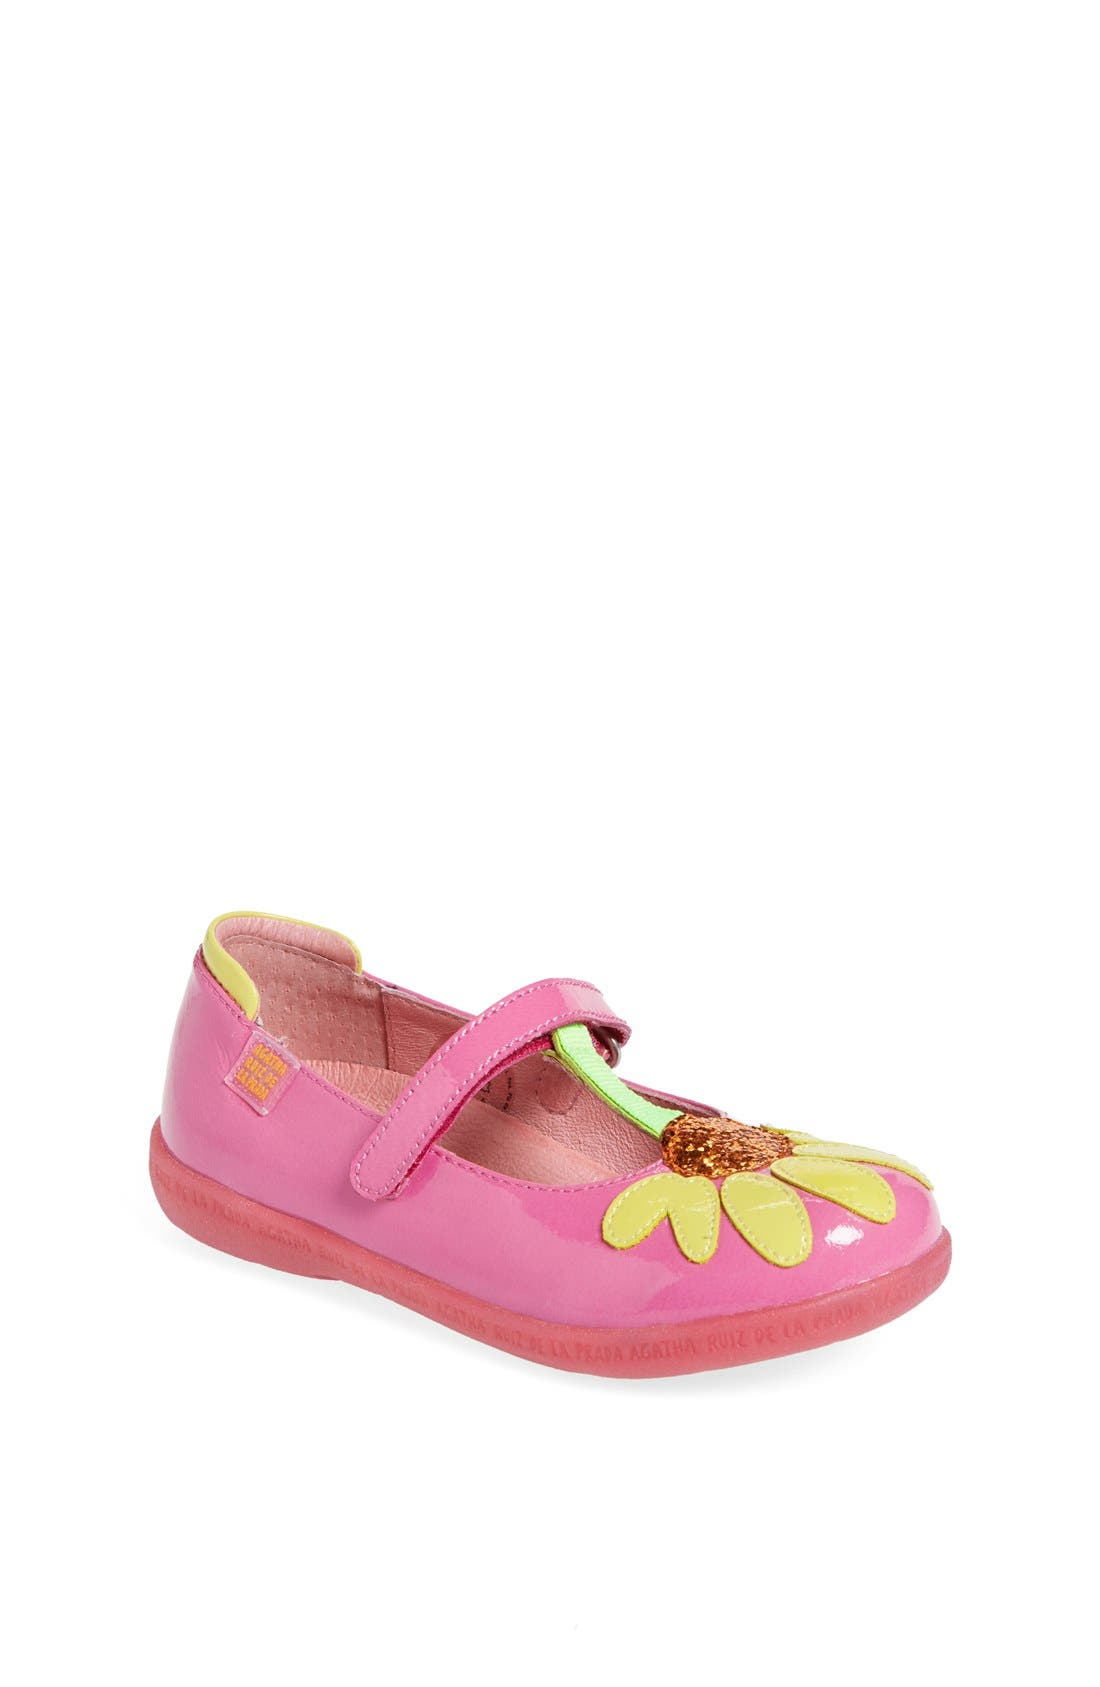 Alternate Image 1 Selected - Agatha Ruiz de la Prada 'Glitter Flower' Mary Jane (Toddler & Little Kid)